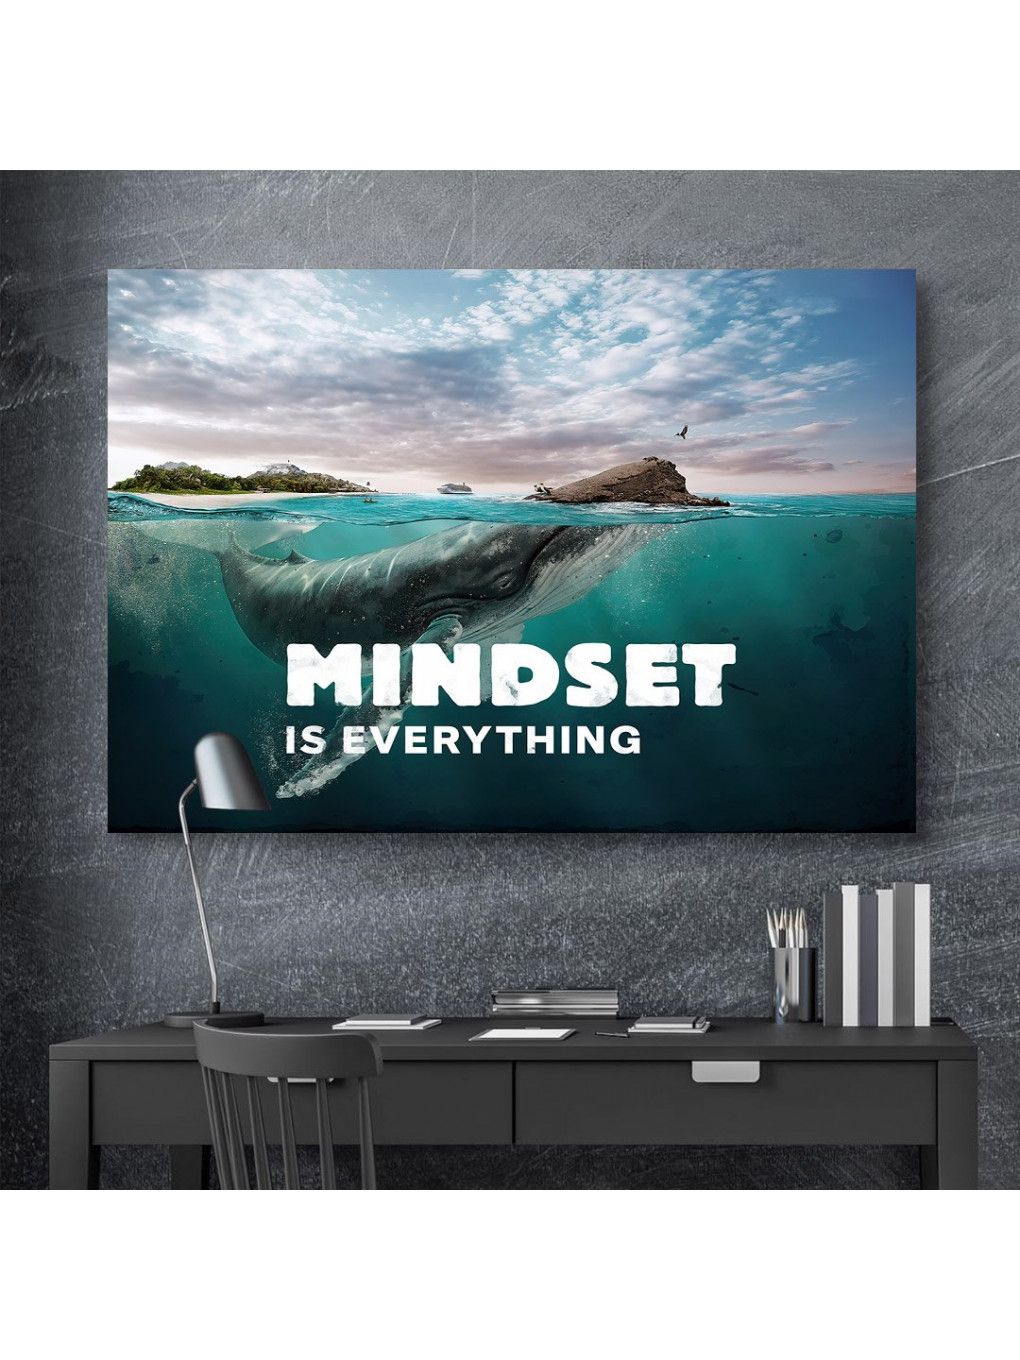 Mindset is everything (Whale)_MND120_2